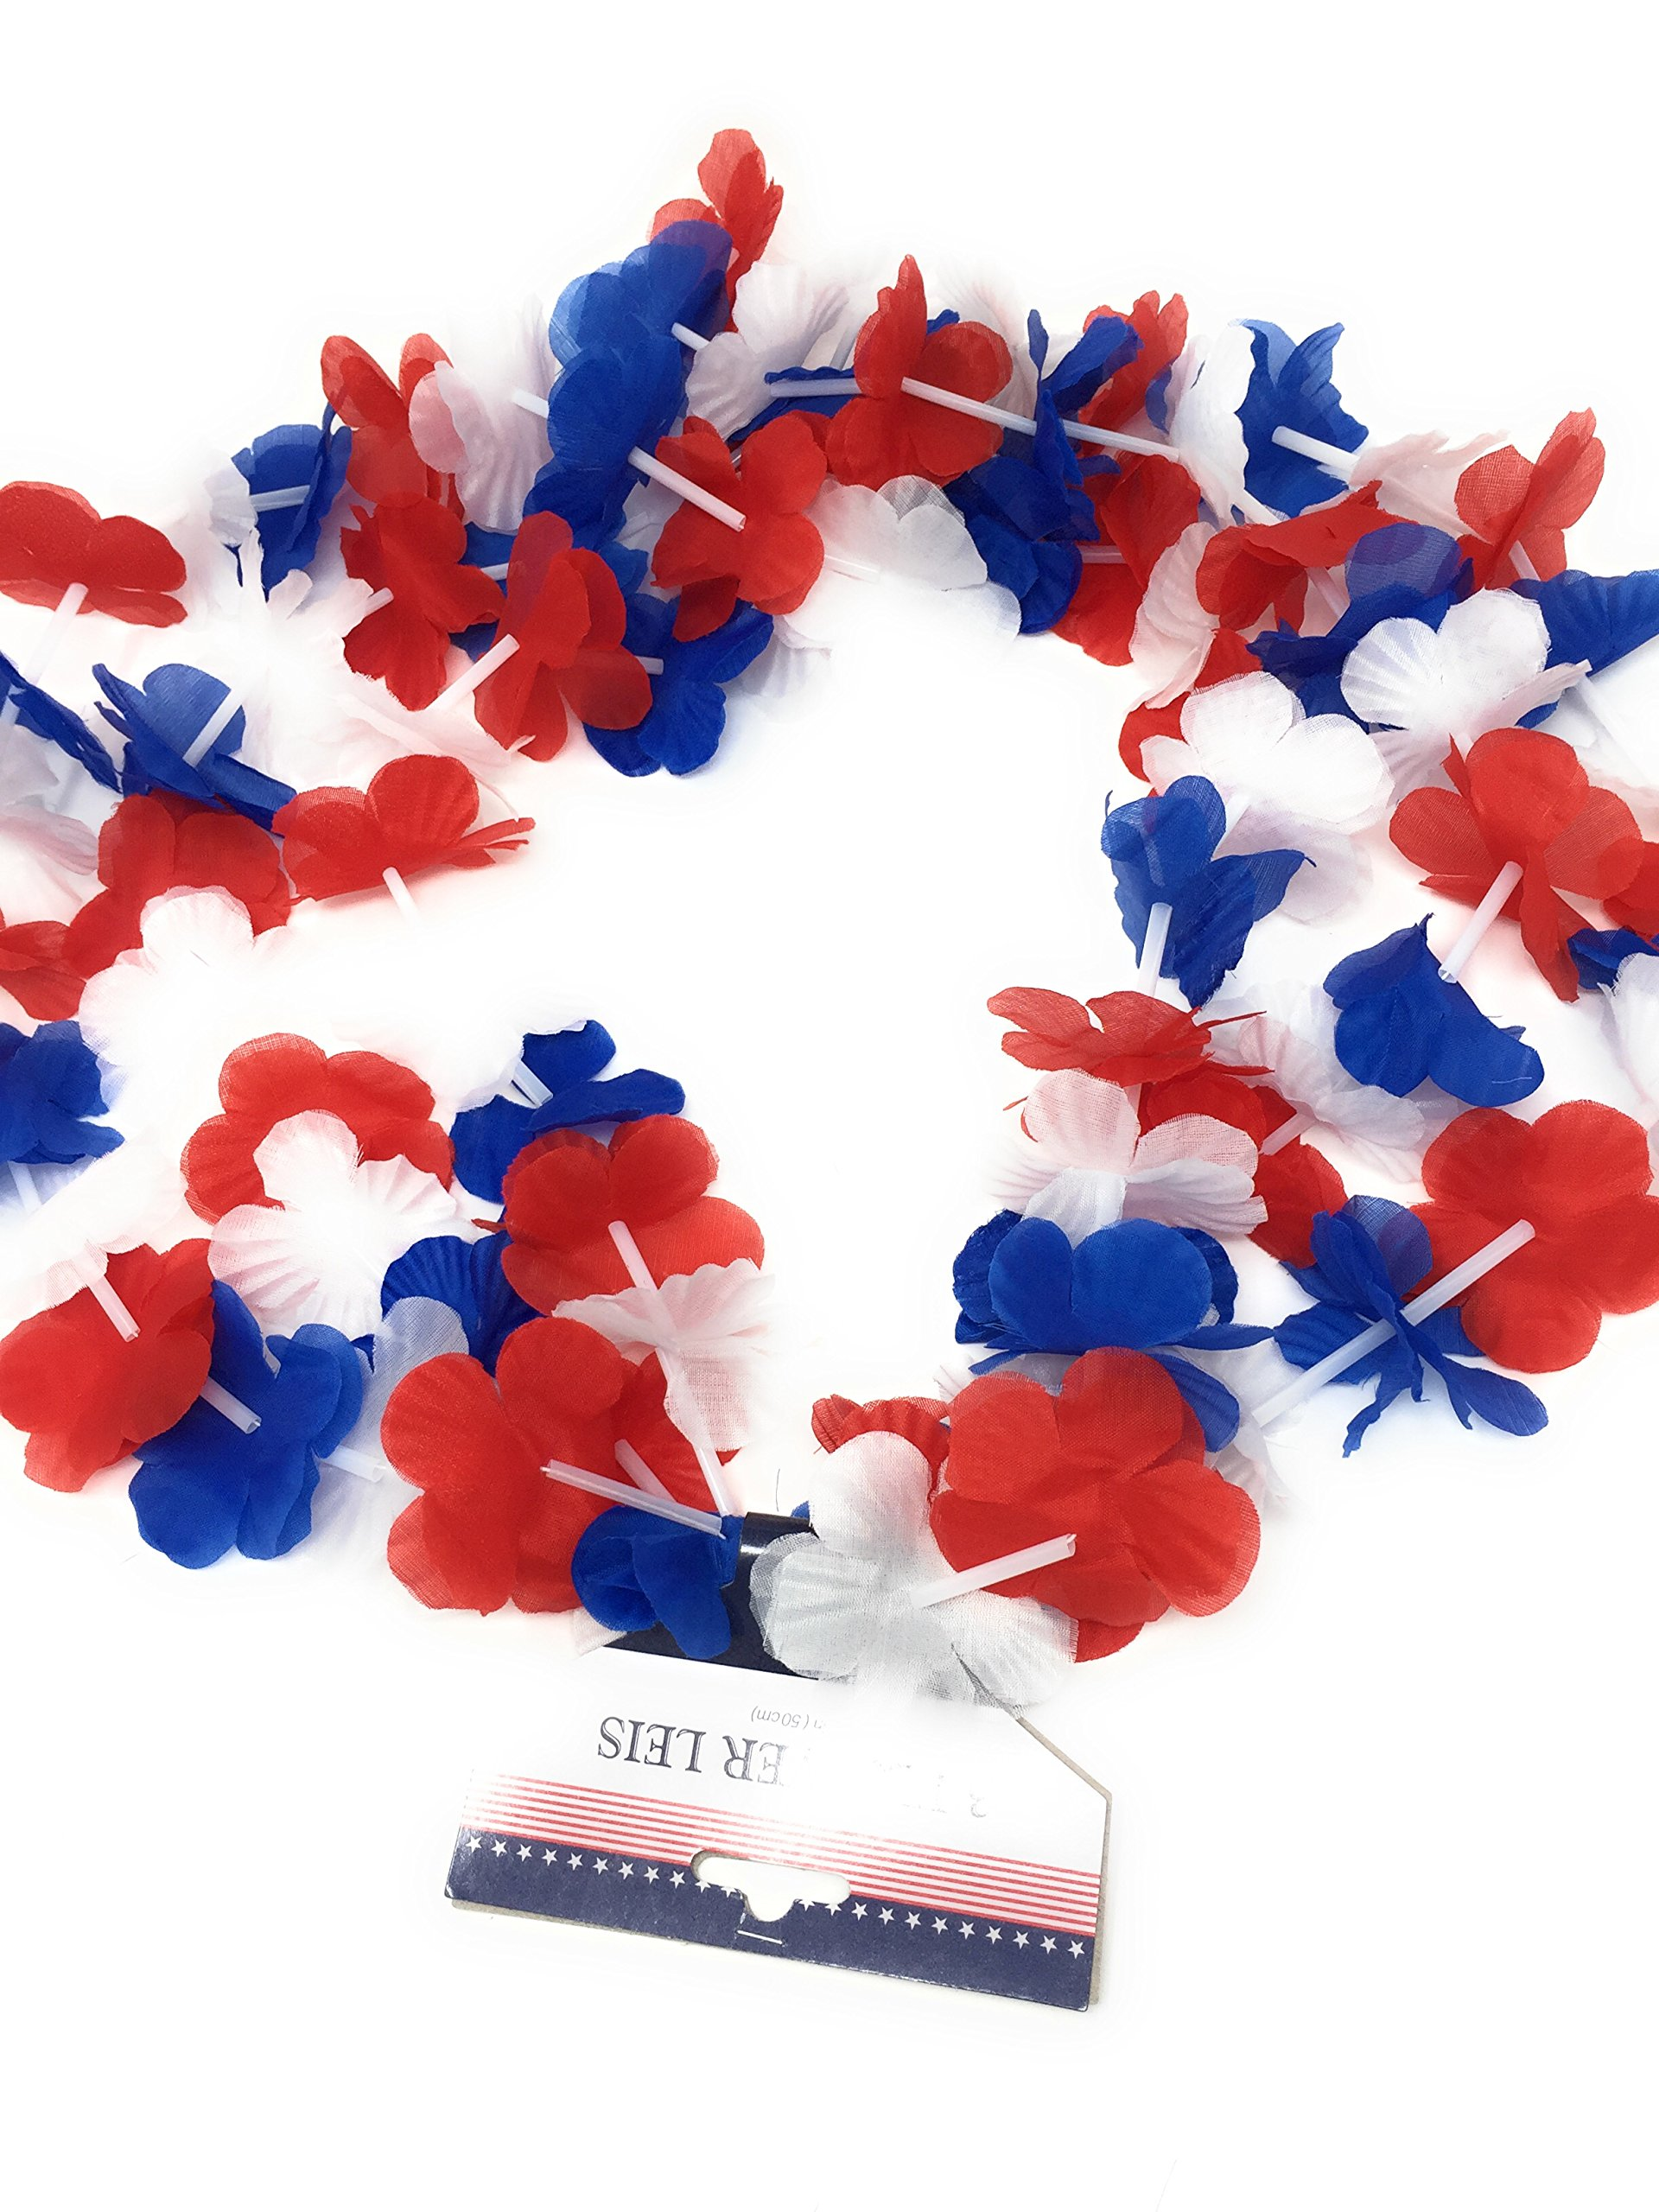 Patriotic Party Pack 3 USA Flag Glow Sticks (1) 3 Pack Patriotic Flower Leis (1) 3 Pack USA Necklaces Plus 100 Plus Tips Guide to A Safe 4th of July Celebration by Unknown (Image #3)